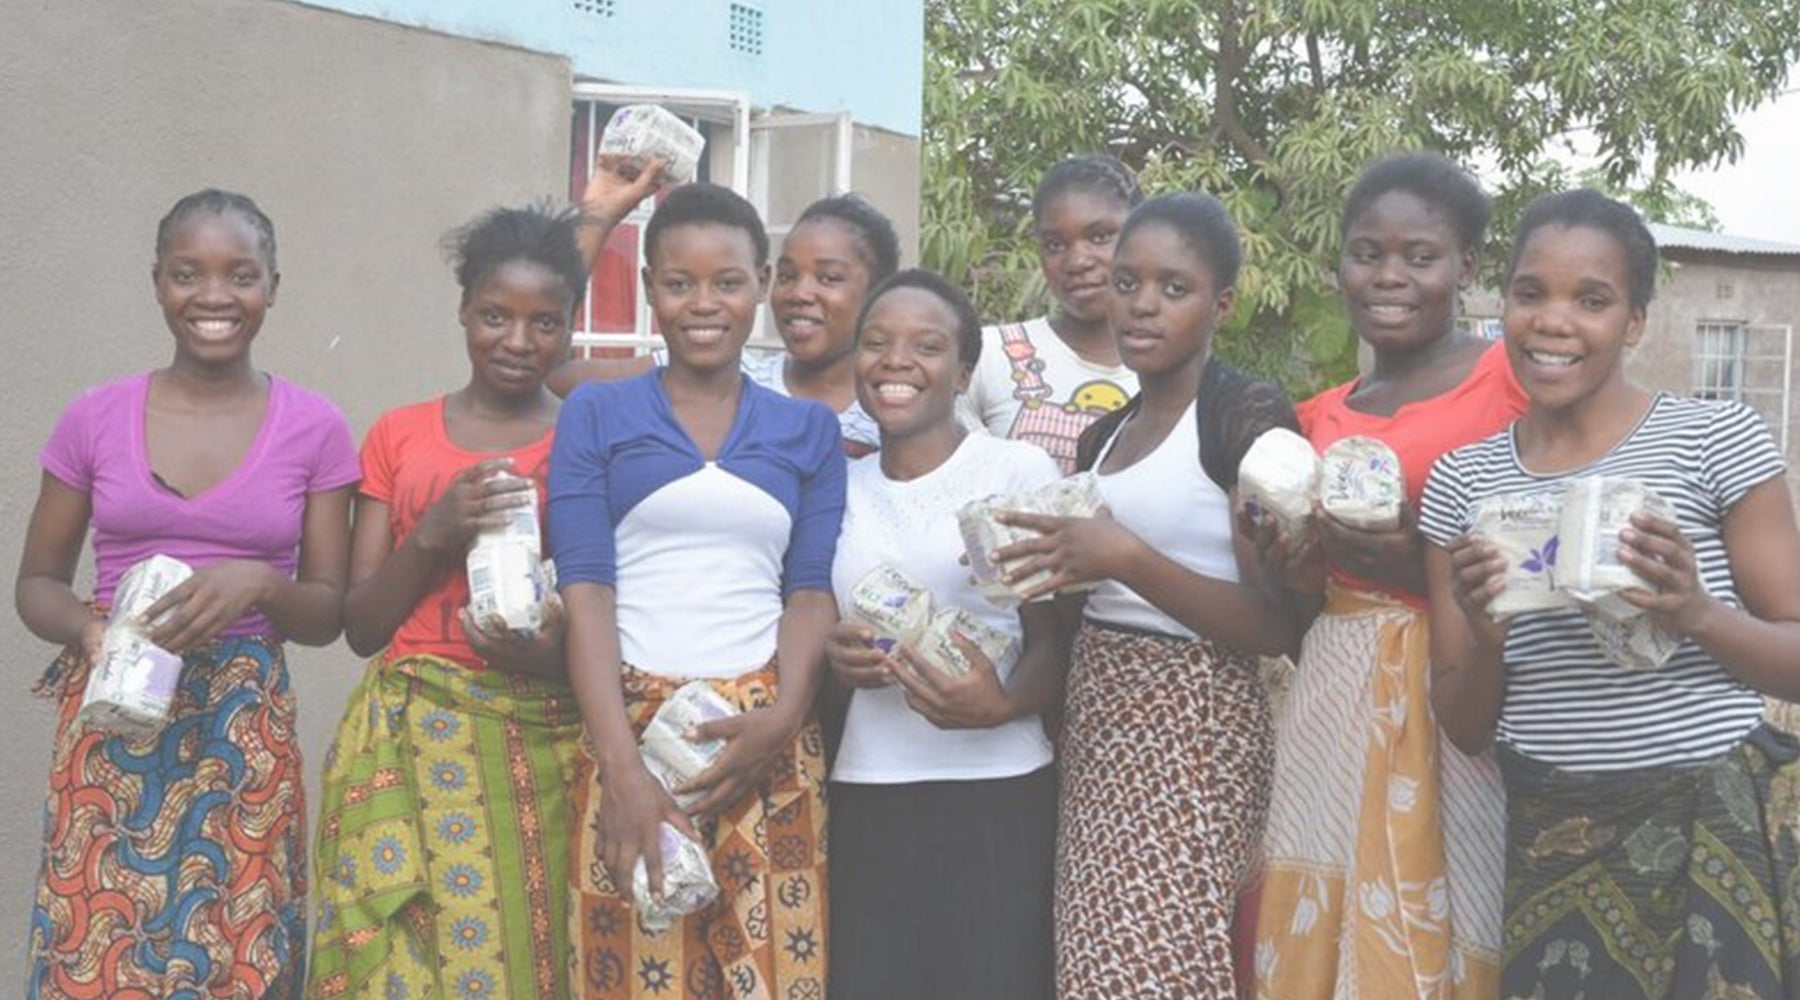 Group of women smiling and holding feminine pads